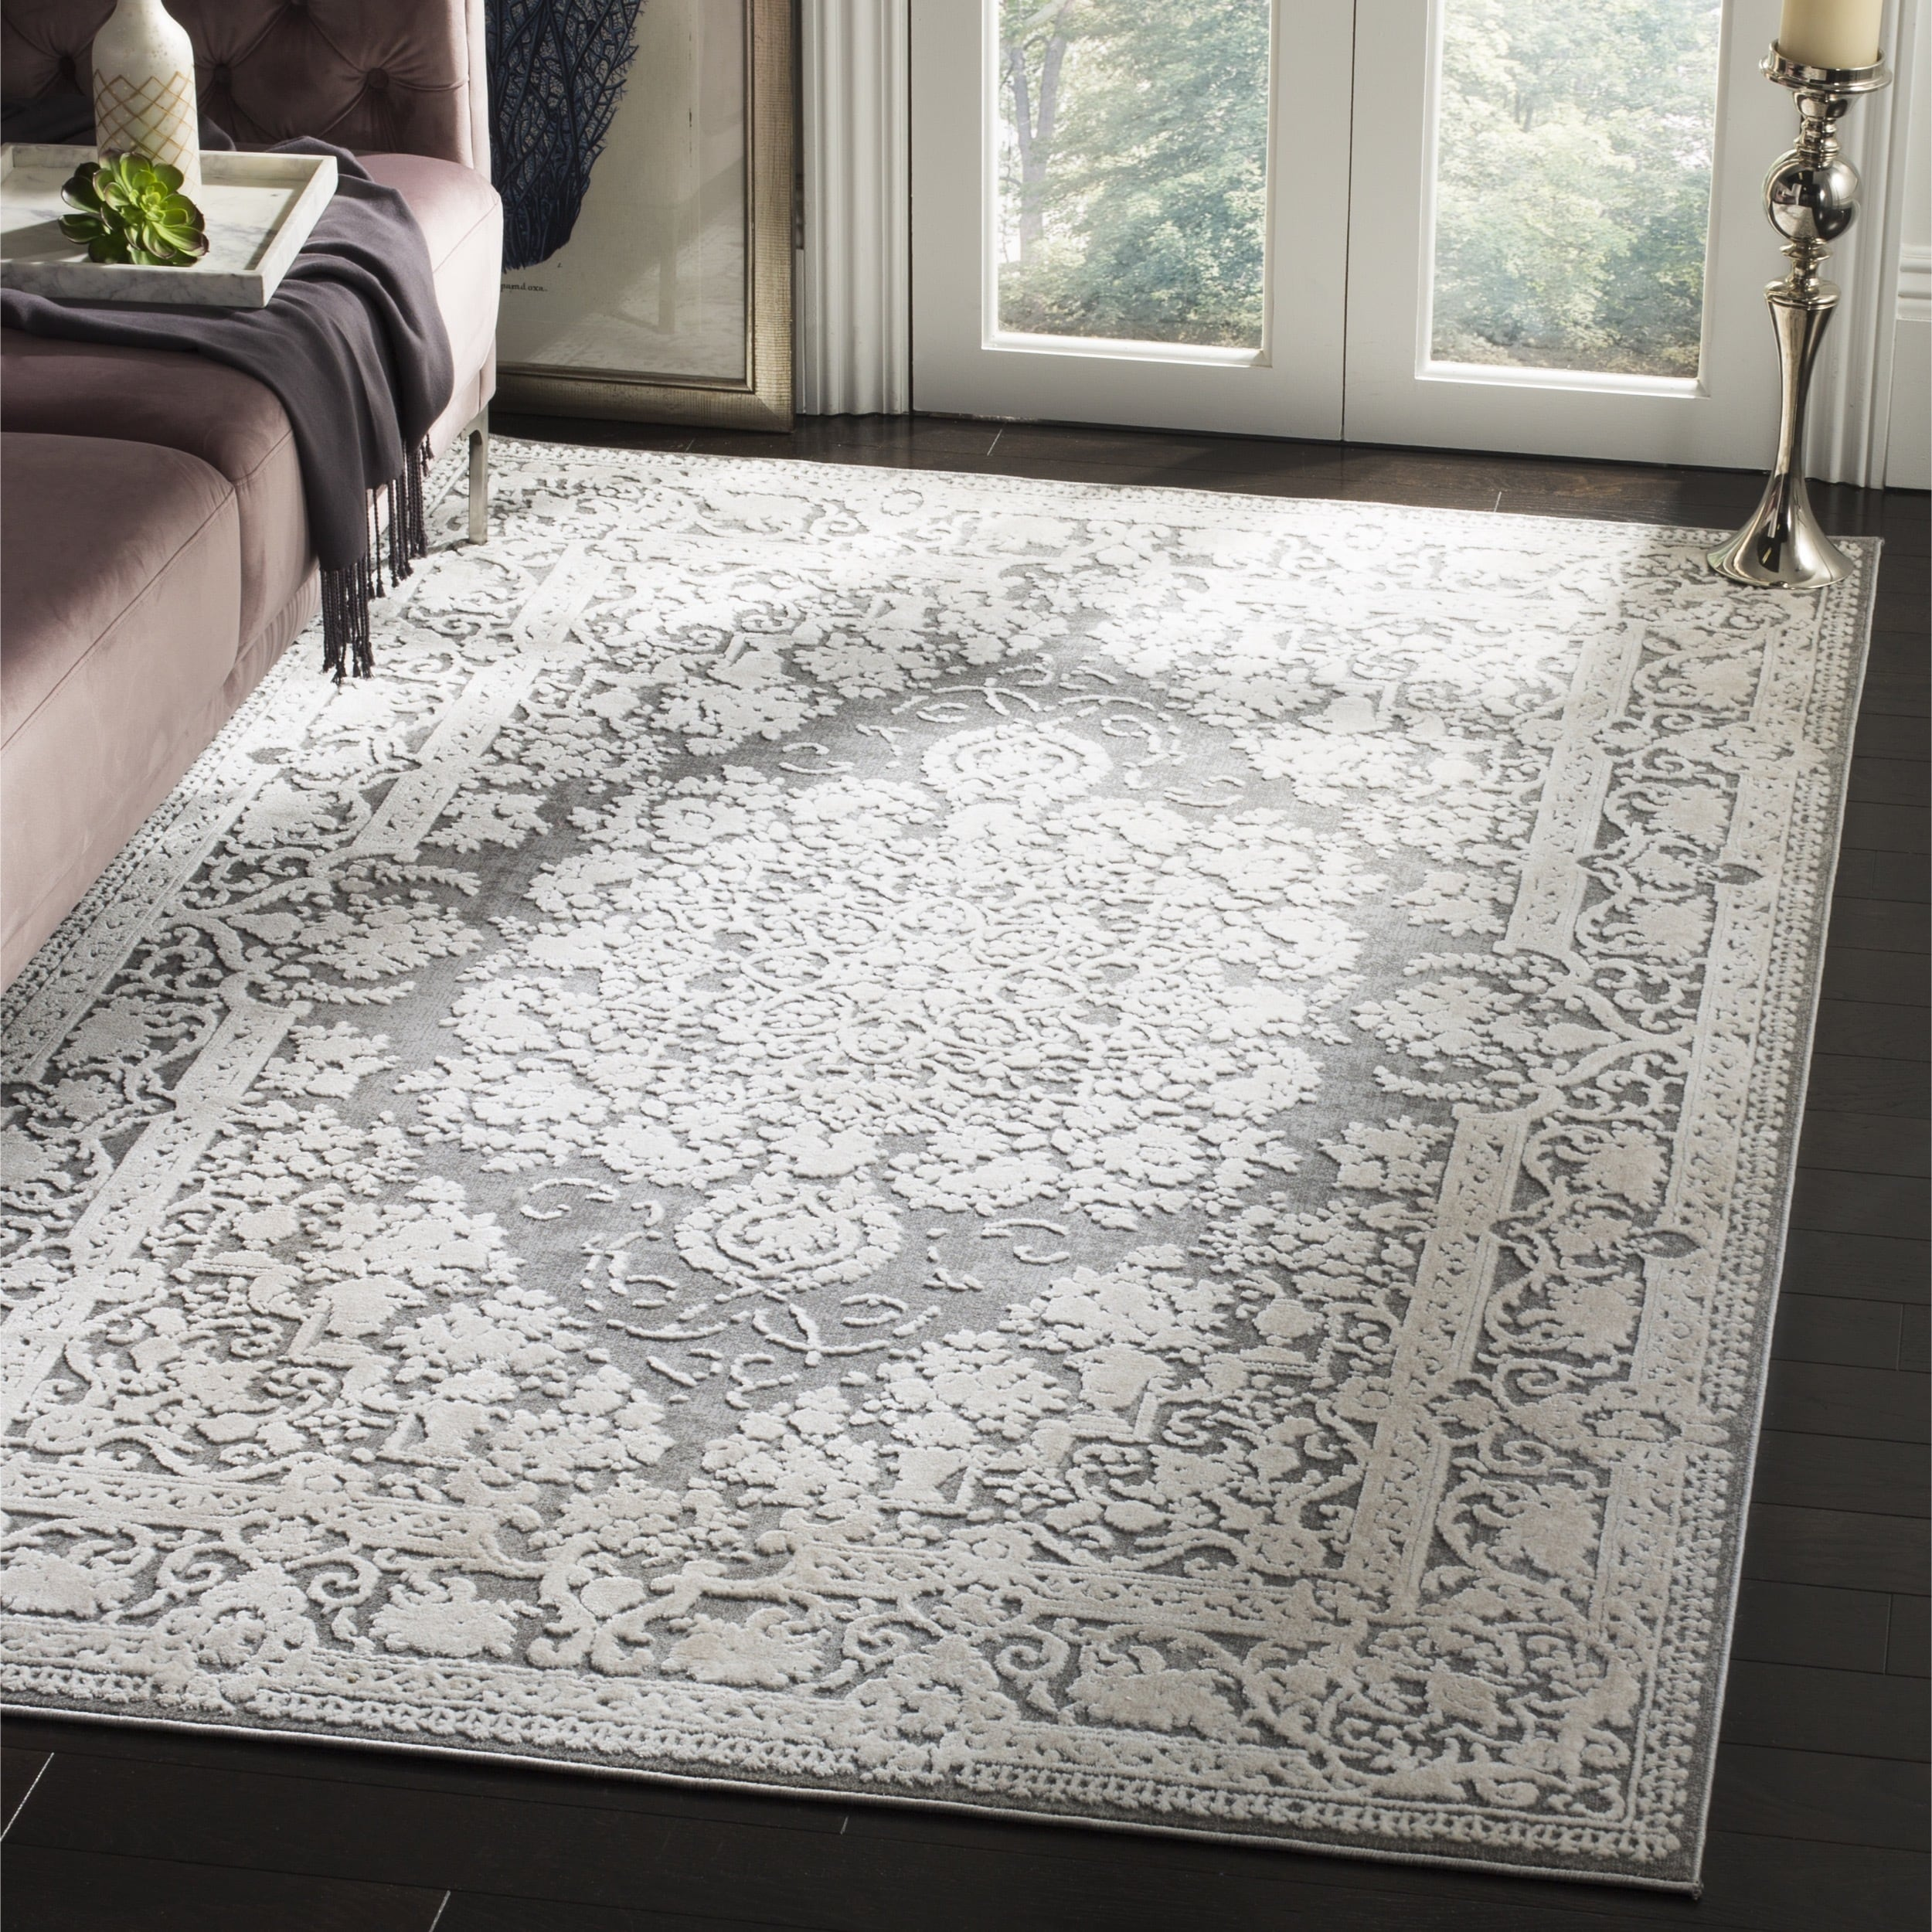 room by luxurious area with living grey watch for rug black indoor addiction in handmade youtube cream and